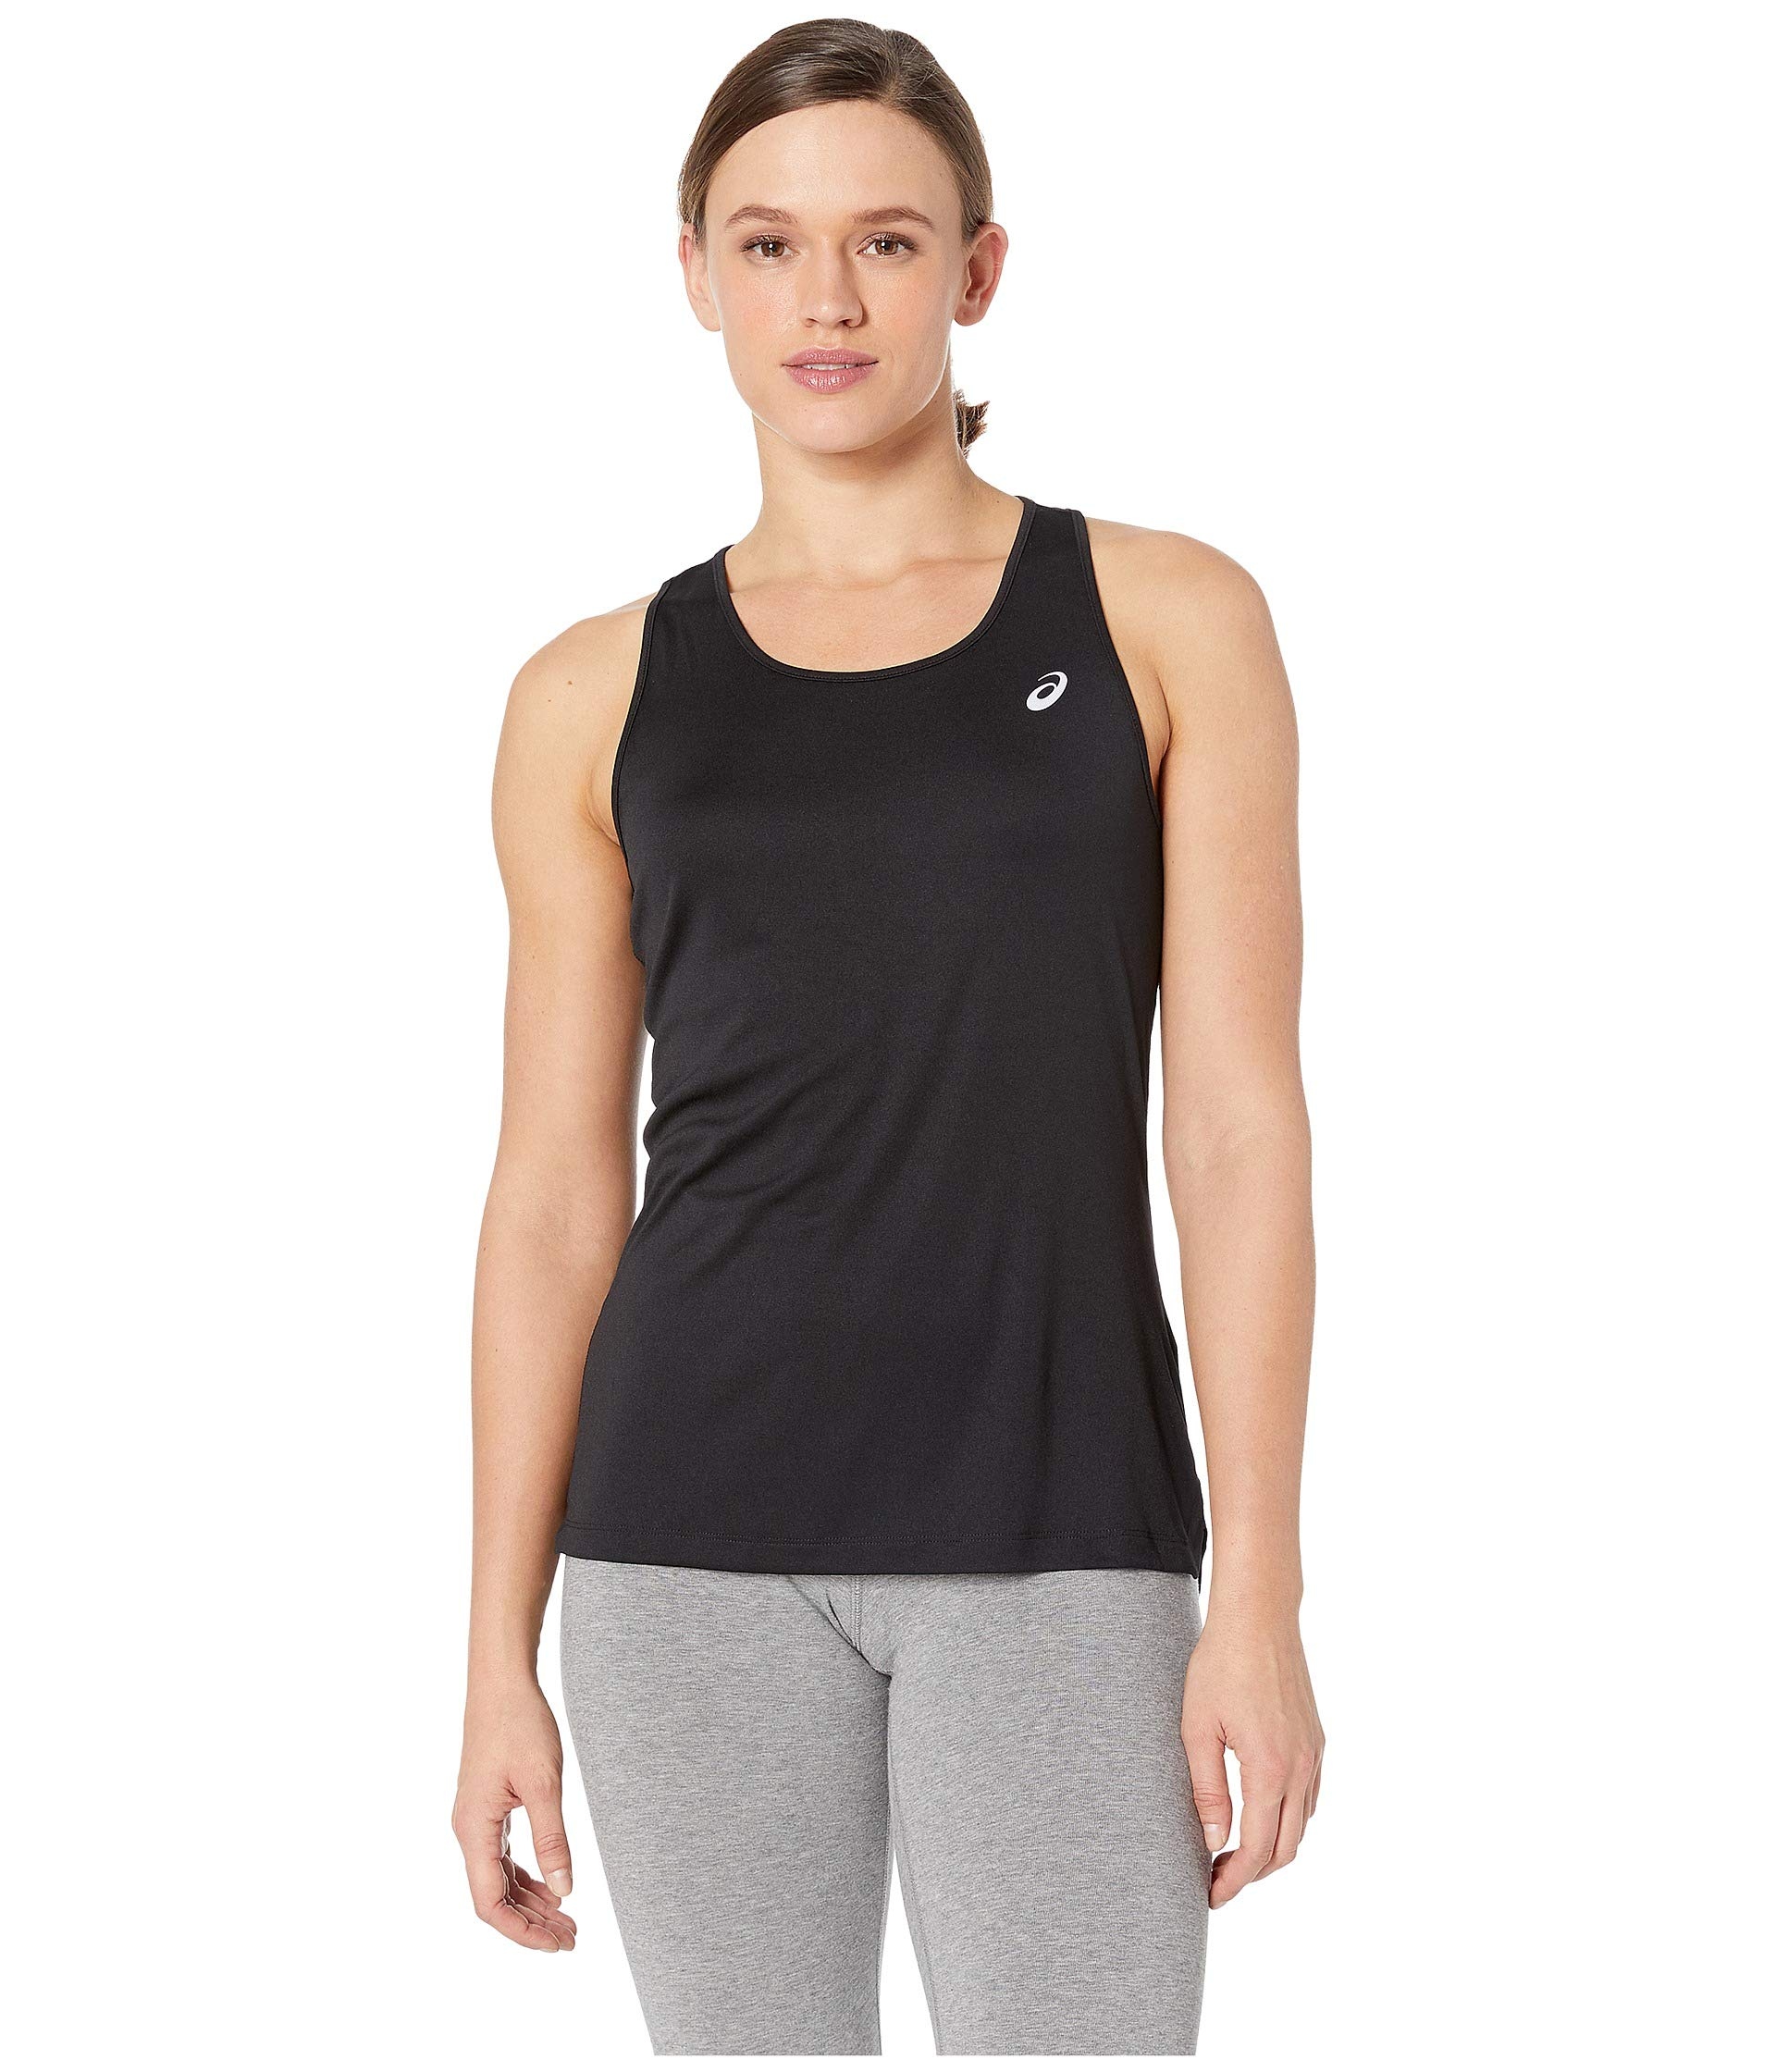 ASICS Women's Silver Tank, Performance Black, Large by ASICS